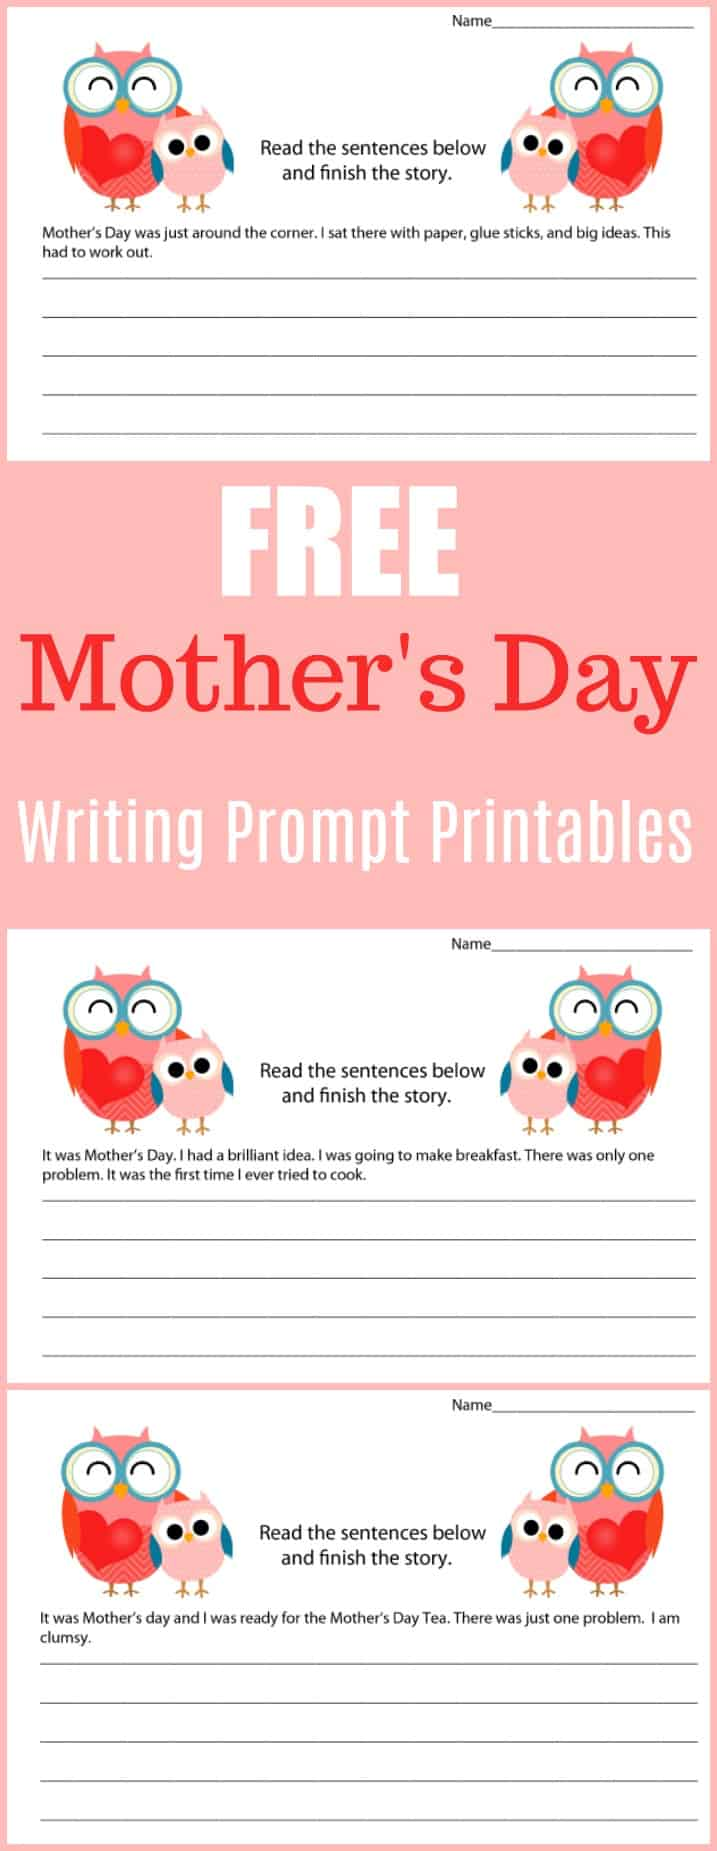 Free Mother's Day Writing Prompt Printables